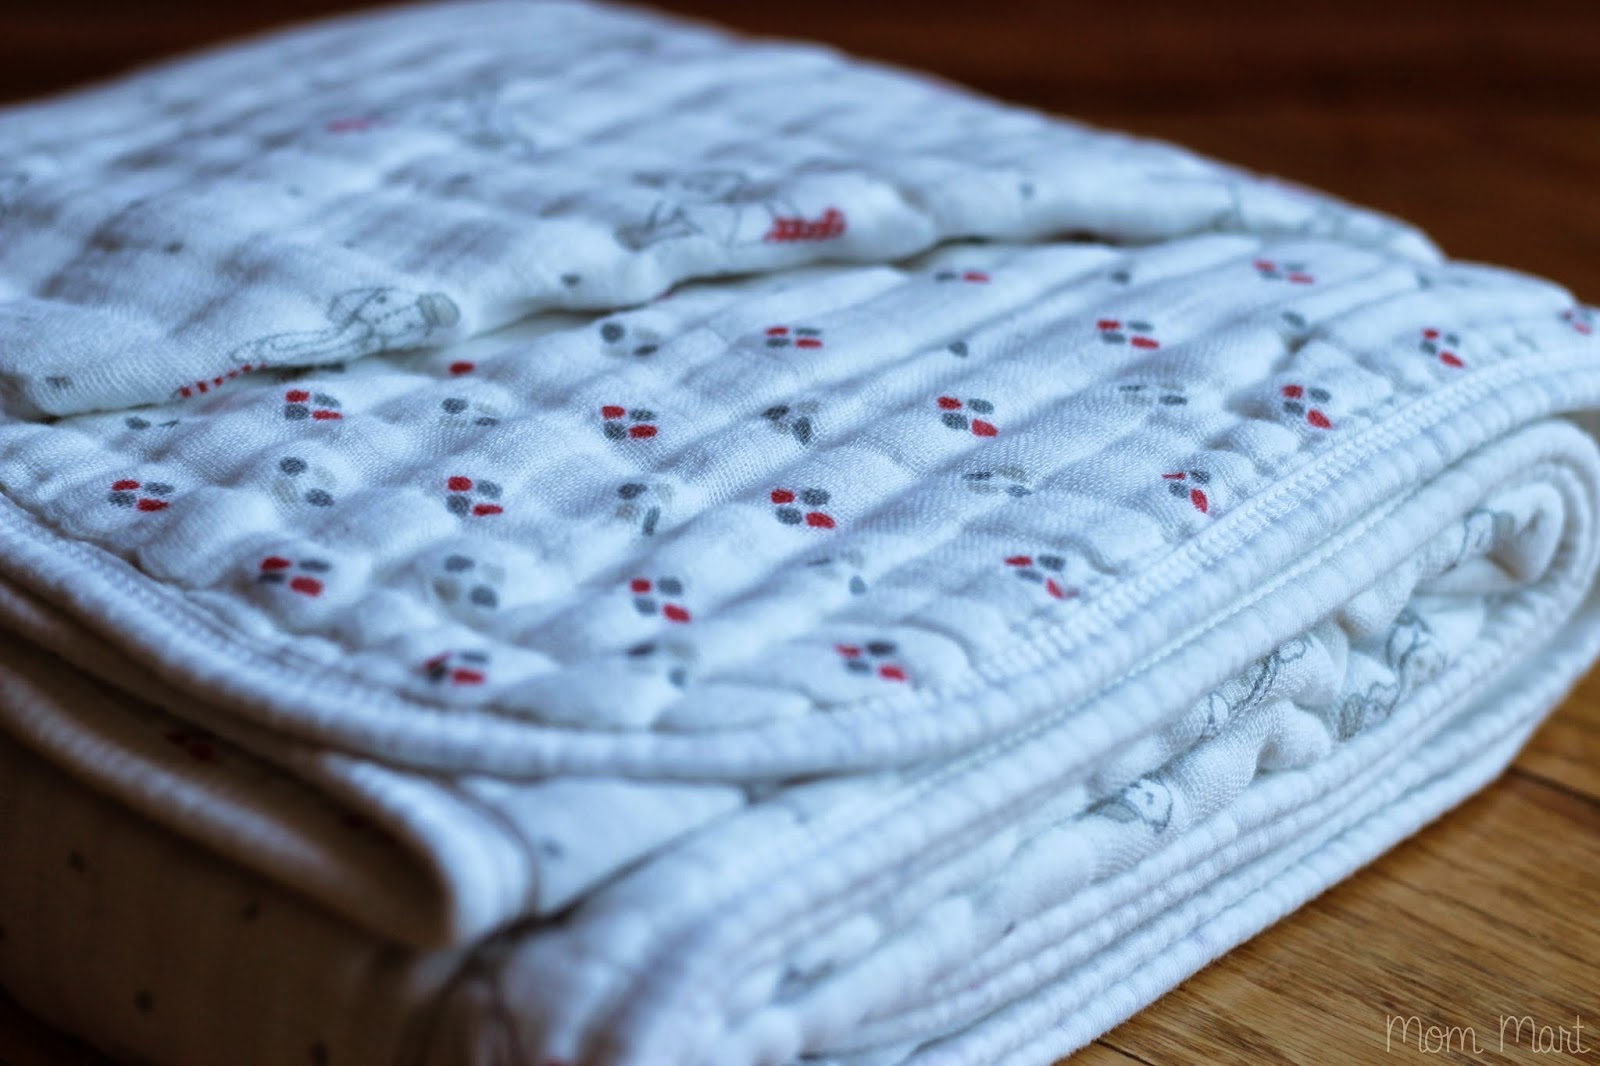 AdenAndAnais Dream Blanket #Review #Giveaway #Breathable #AdenAndAnais #DreamBlanket